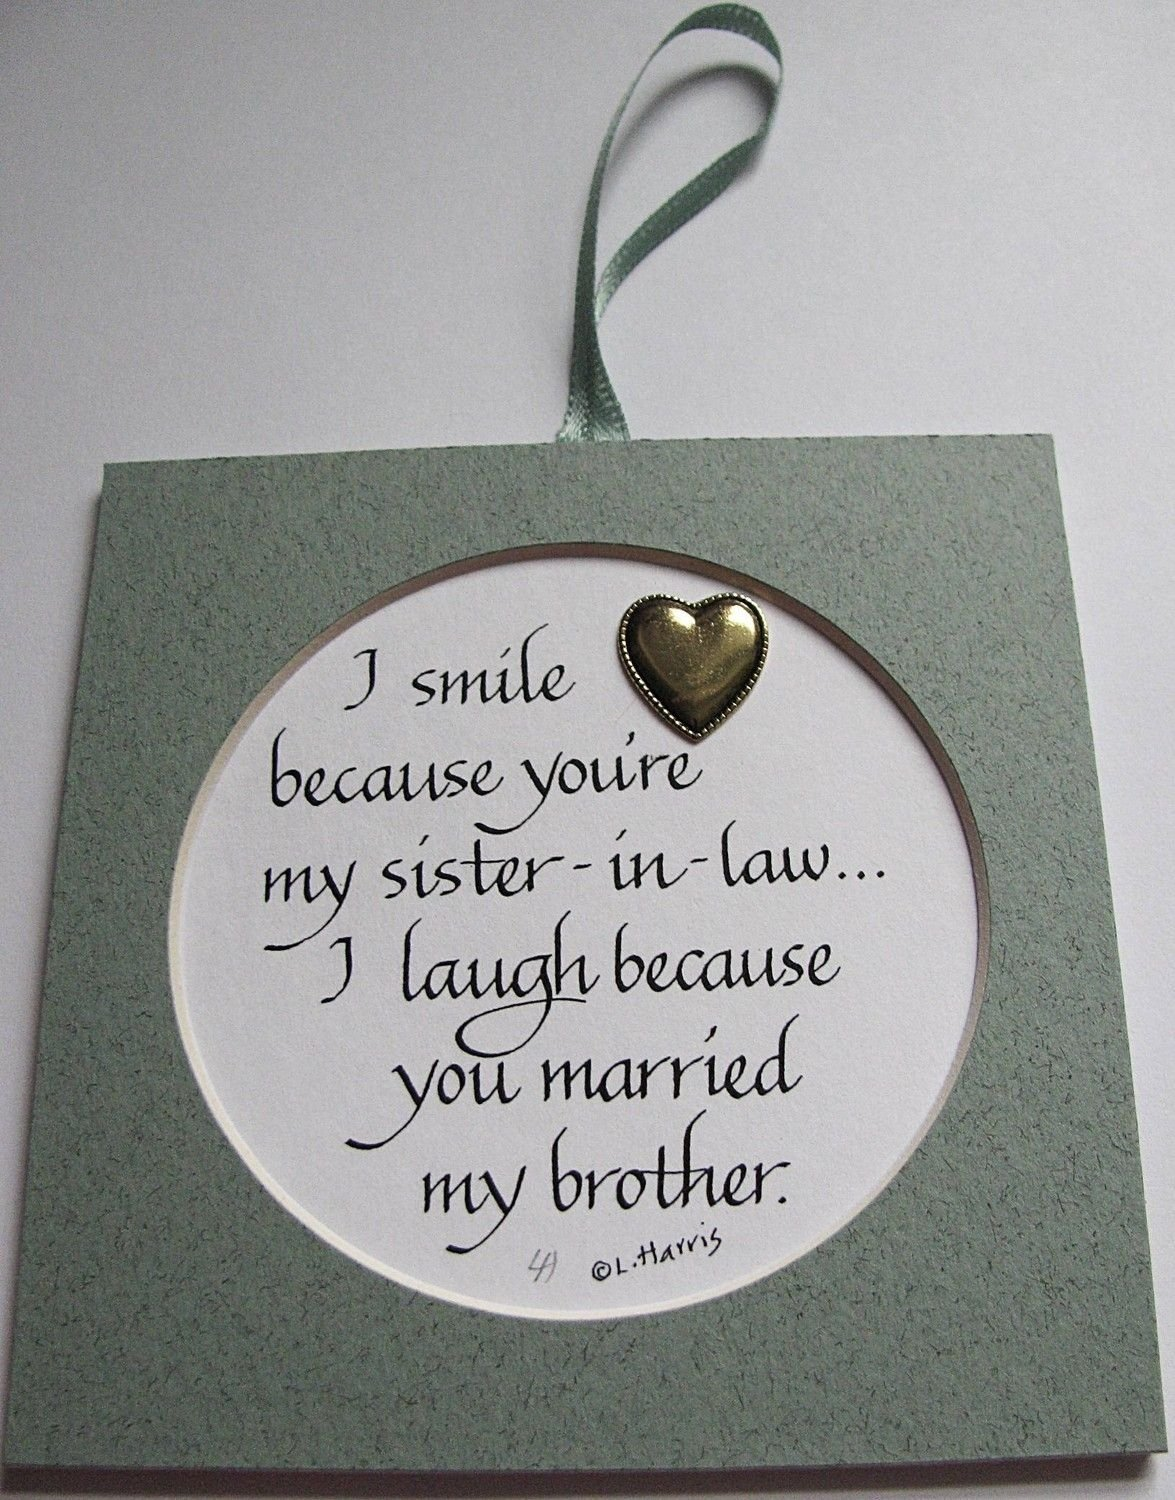 10 Trendy Gift Idea For Sister In Law i smile because youre my sister in law 8 00 via etsy funny 2